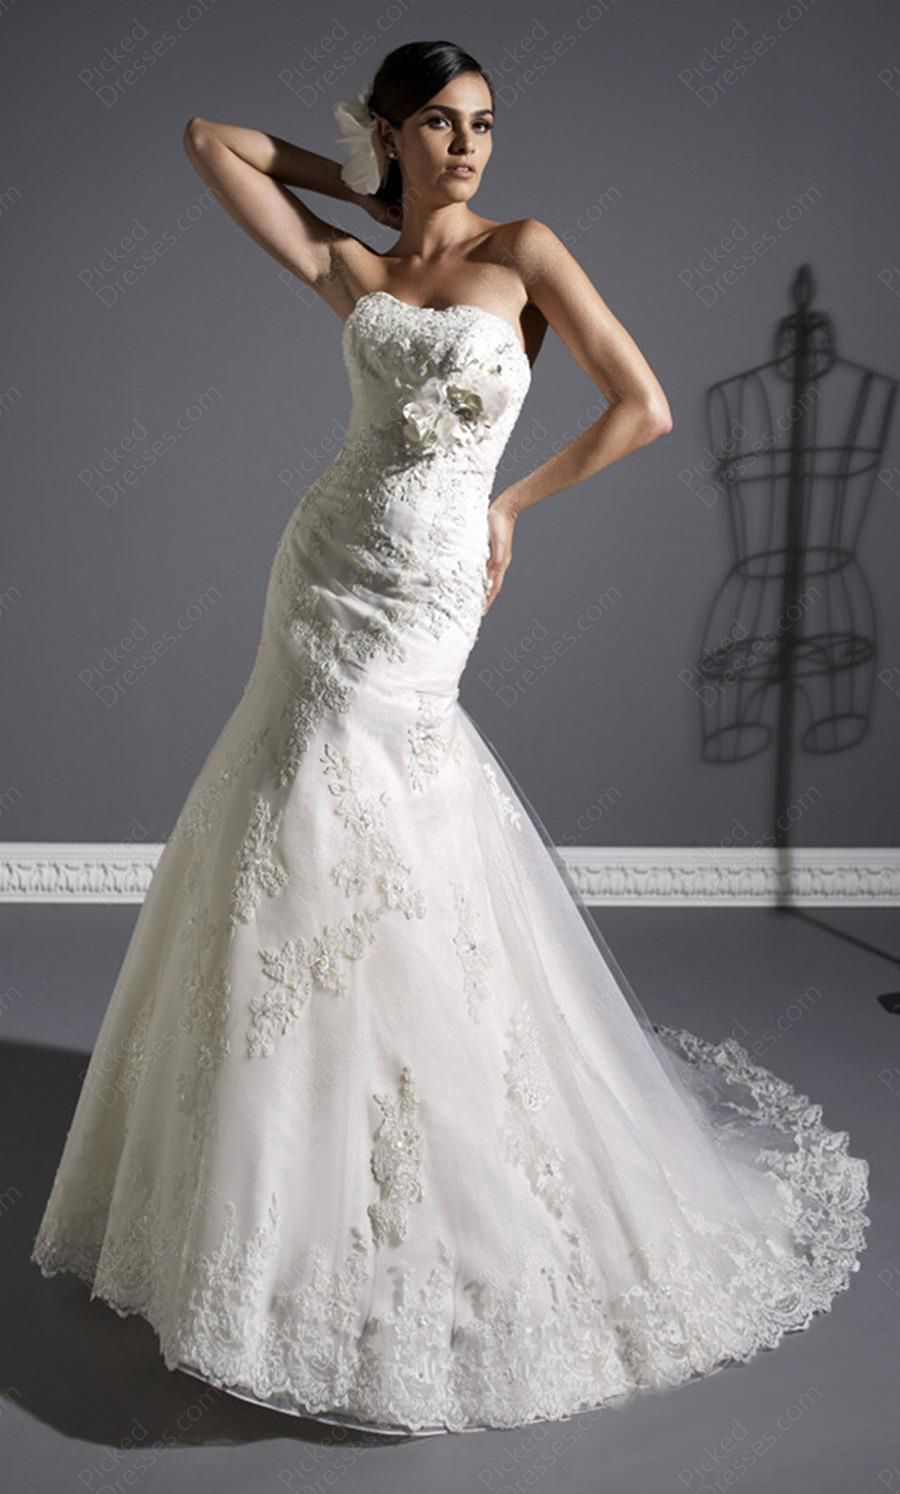 Strapless fitted lace wedding dresses  mermaid wedding dress  dresses  Pinterest  Wedding dress Dream